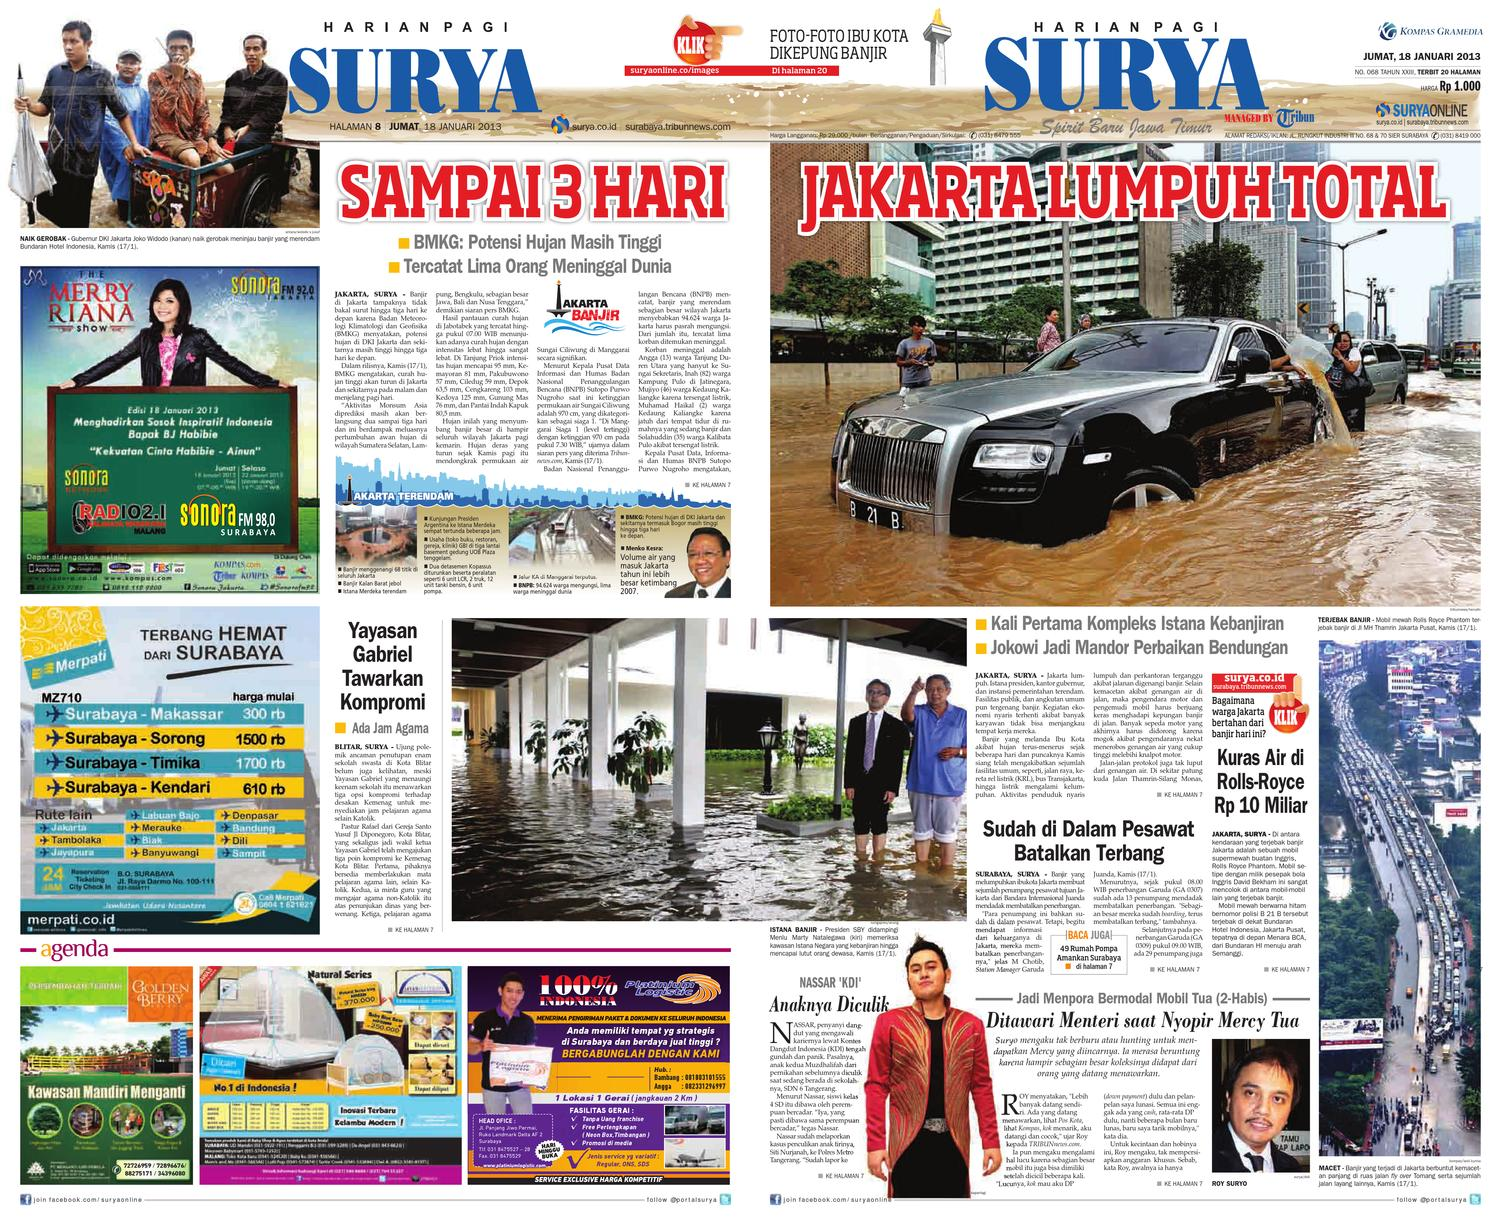 surya paper Surya tutoring: evaluating a growth equity deal in india case solution,surya tutoring: evaluating a growth equity deal in india case analysis, surya tutoring: evaluating a growth equity deal in india case study solution, the case focused on two main issues in the deal-making in the emerging markets, the deal sourcing and.